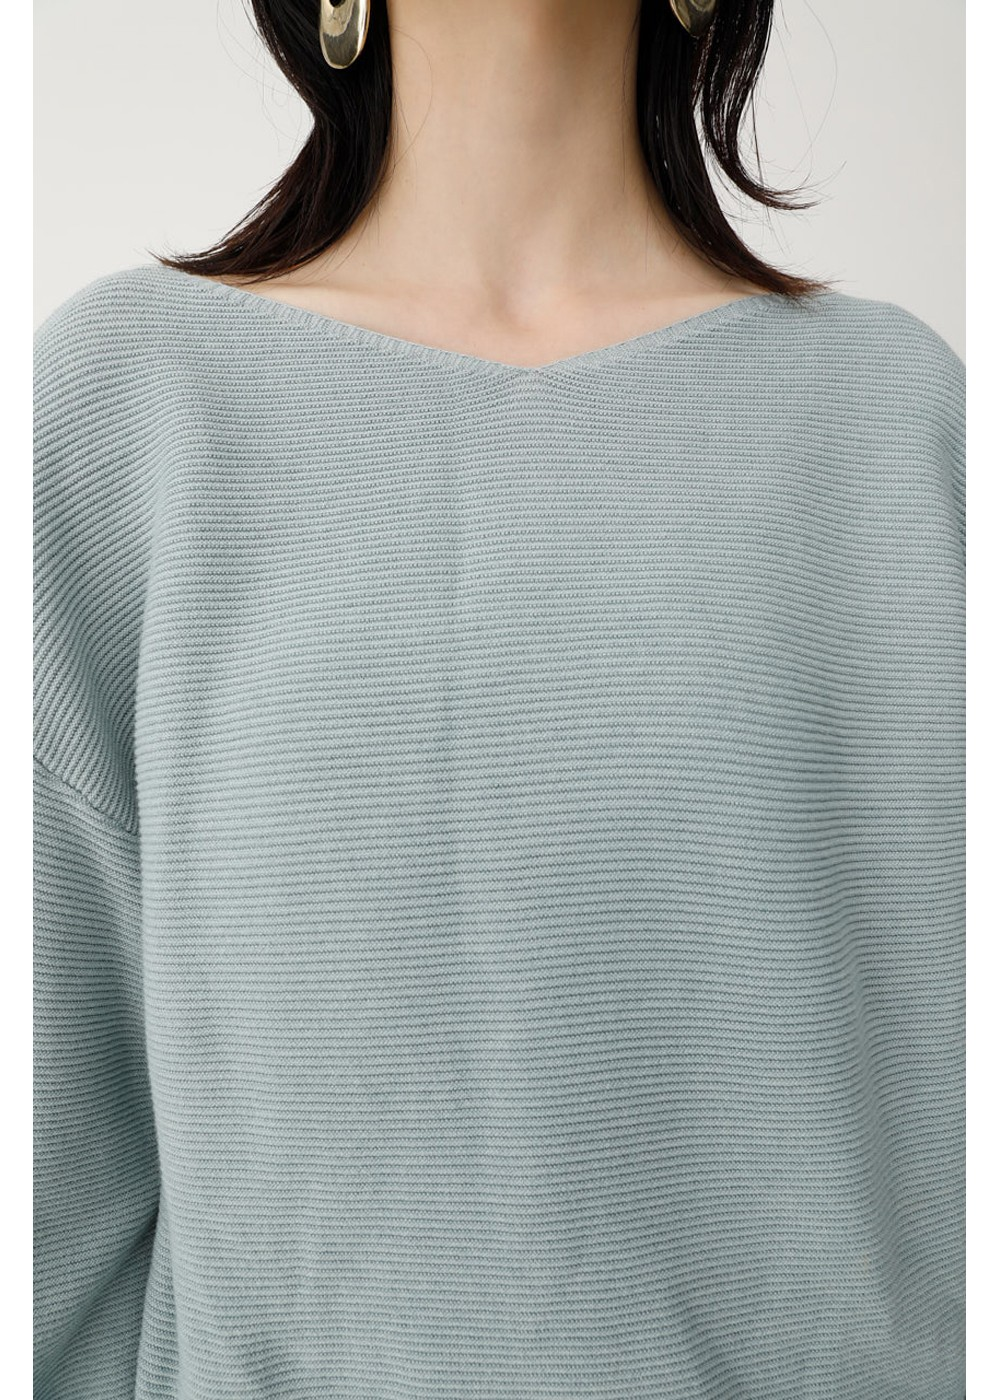 【最大60%OFF】TUCK SLEEVE V NECK KNIT|L/BLU|ニット|MOUSSY